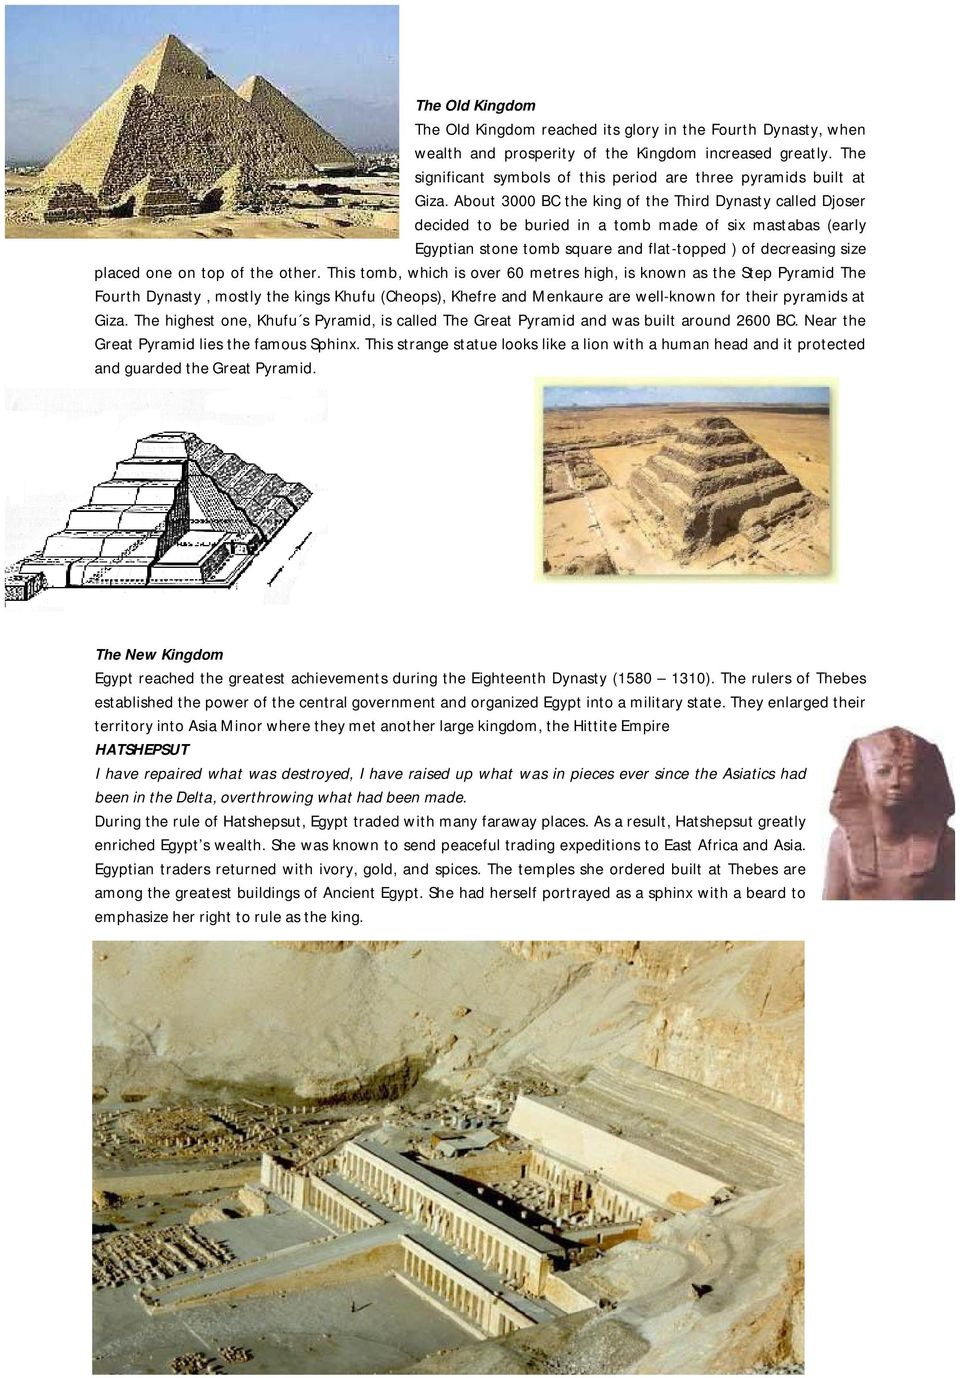 About 3000 BC the king of the Third Dynasty called Djoser decided to be buried in a tomb made of six mastabas (early Egyptian stone tomb square and flat-topped ) of decreasing size placed one on top